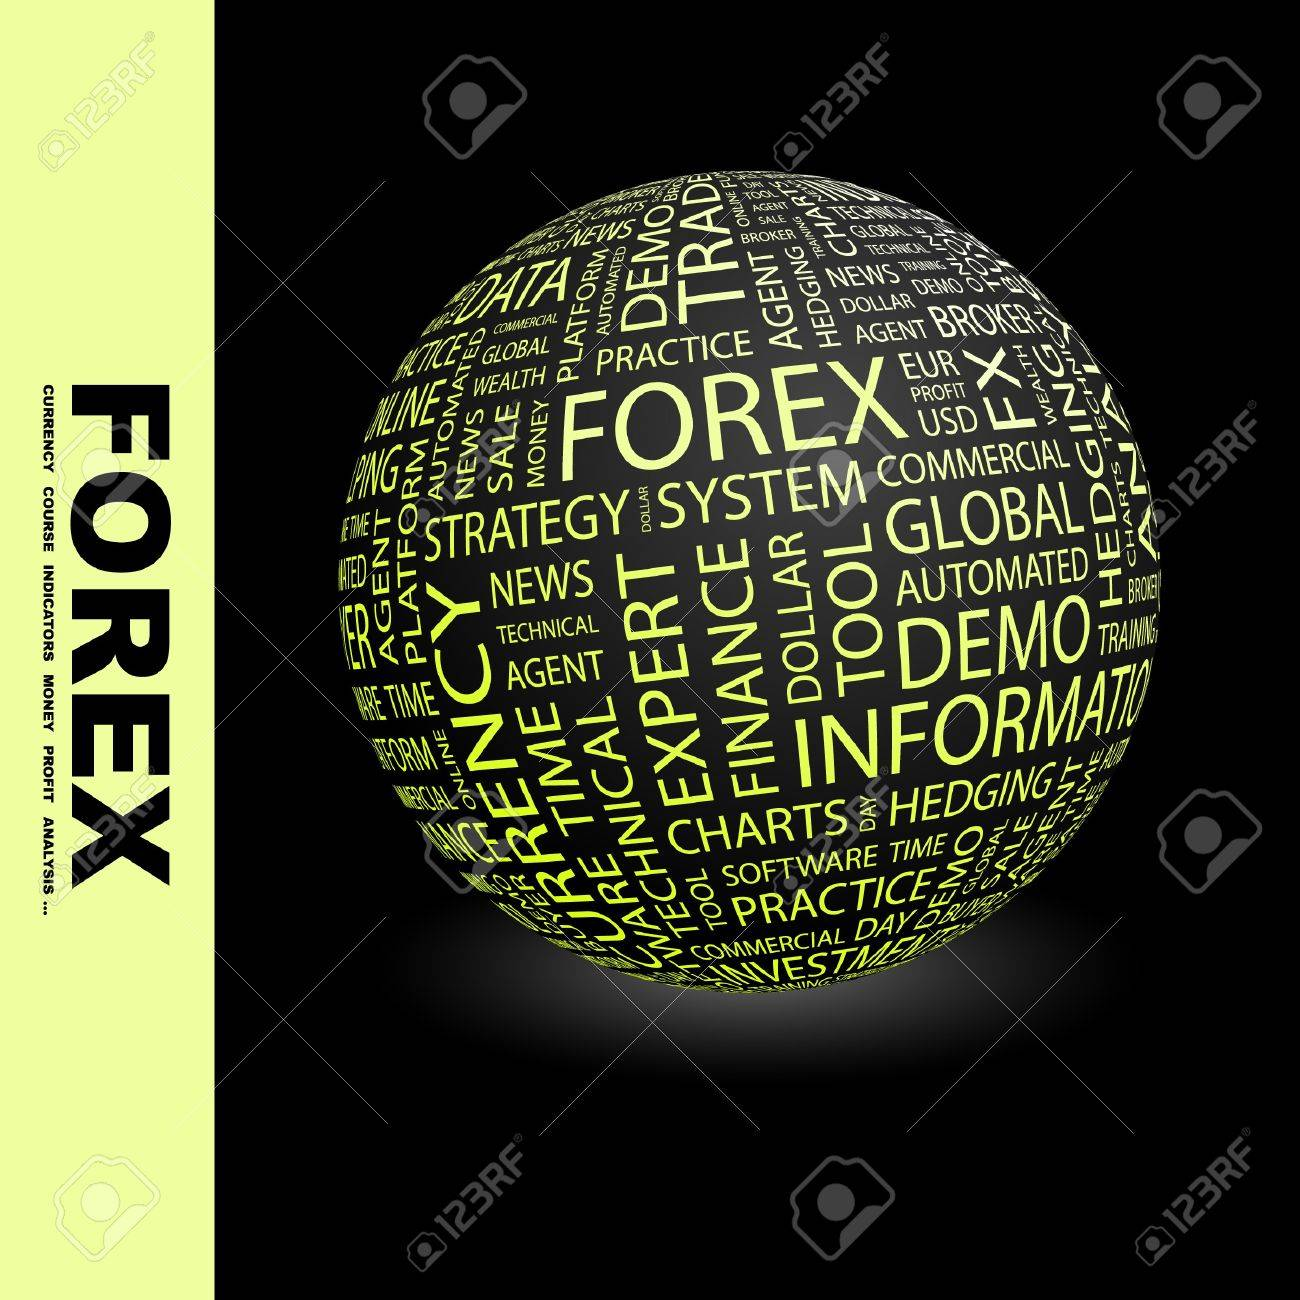 FOREX. Globe with different association terms. Stock Photo - 8238971